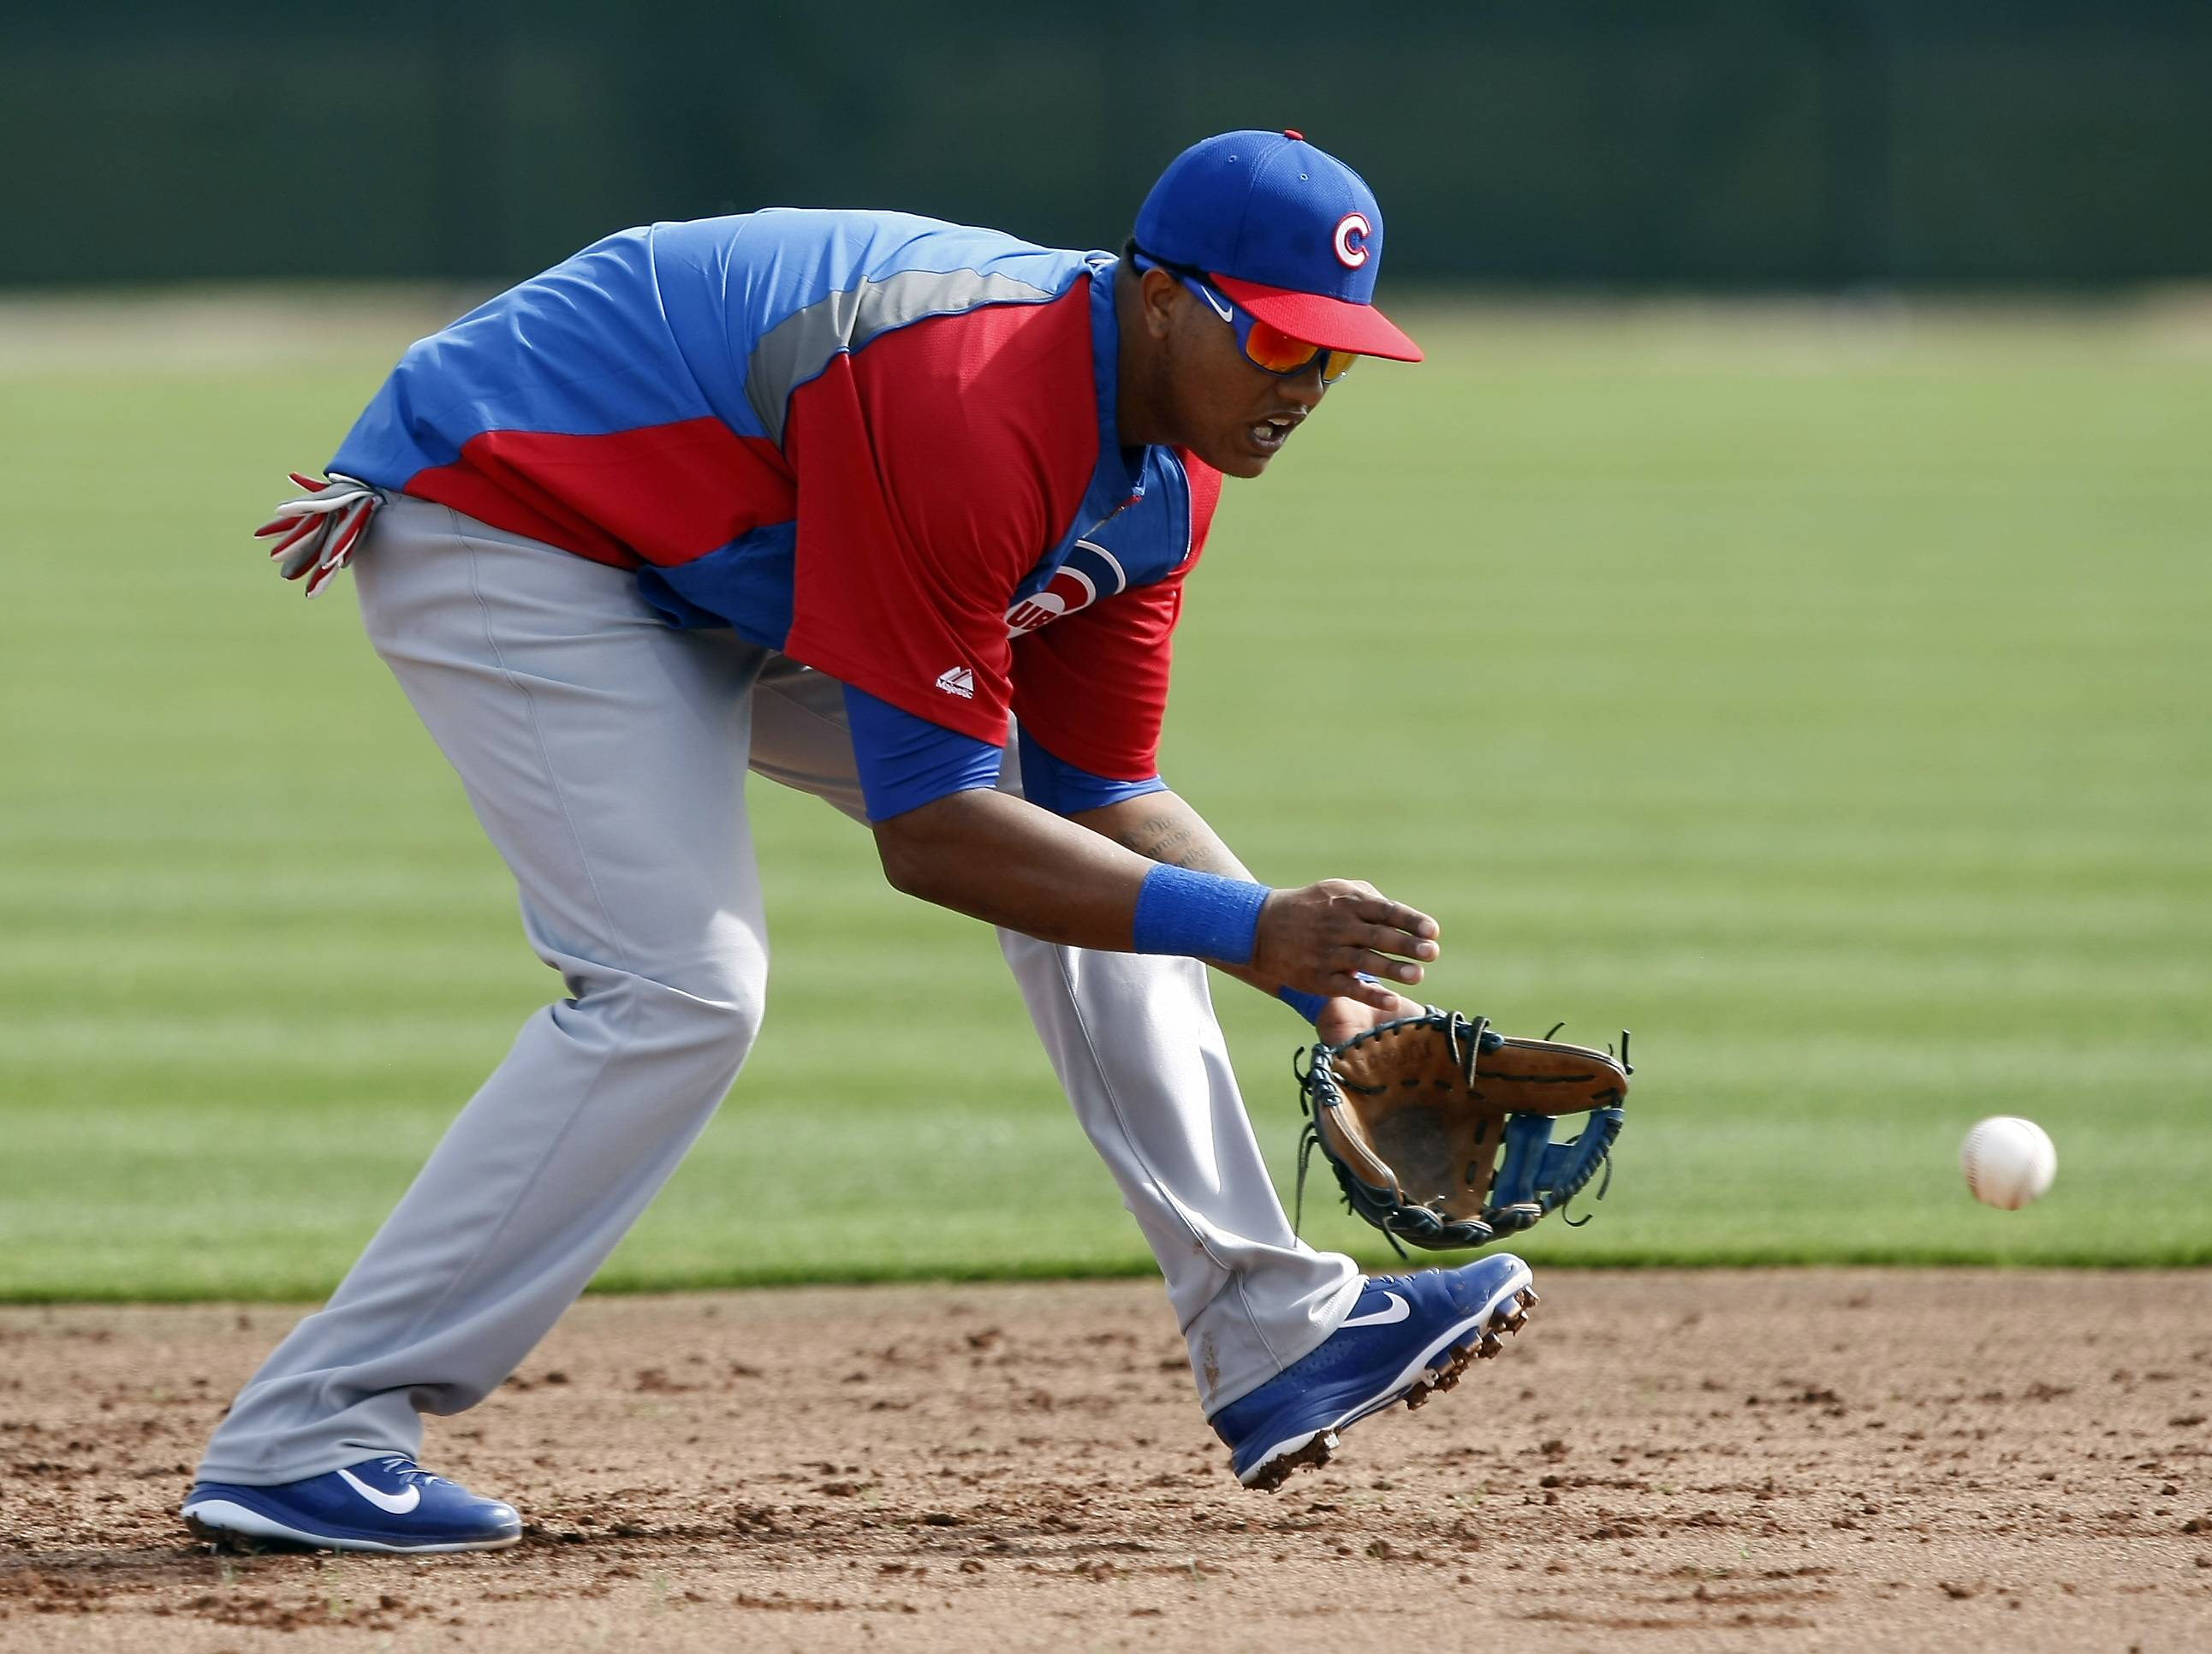 Cubs shortstop Starlin Castro fields groundballs during spring-training practice.